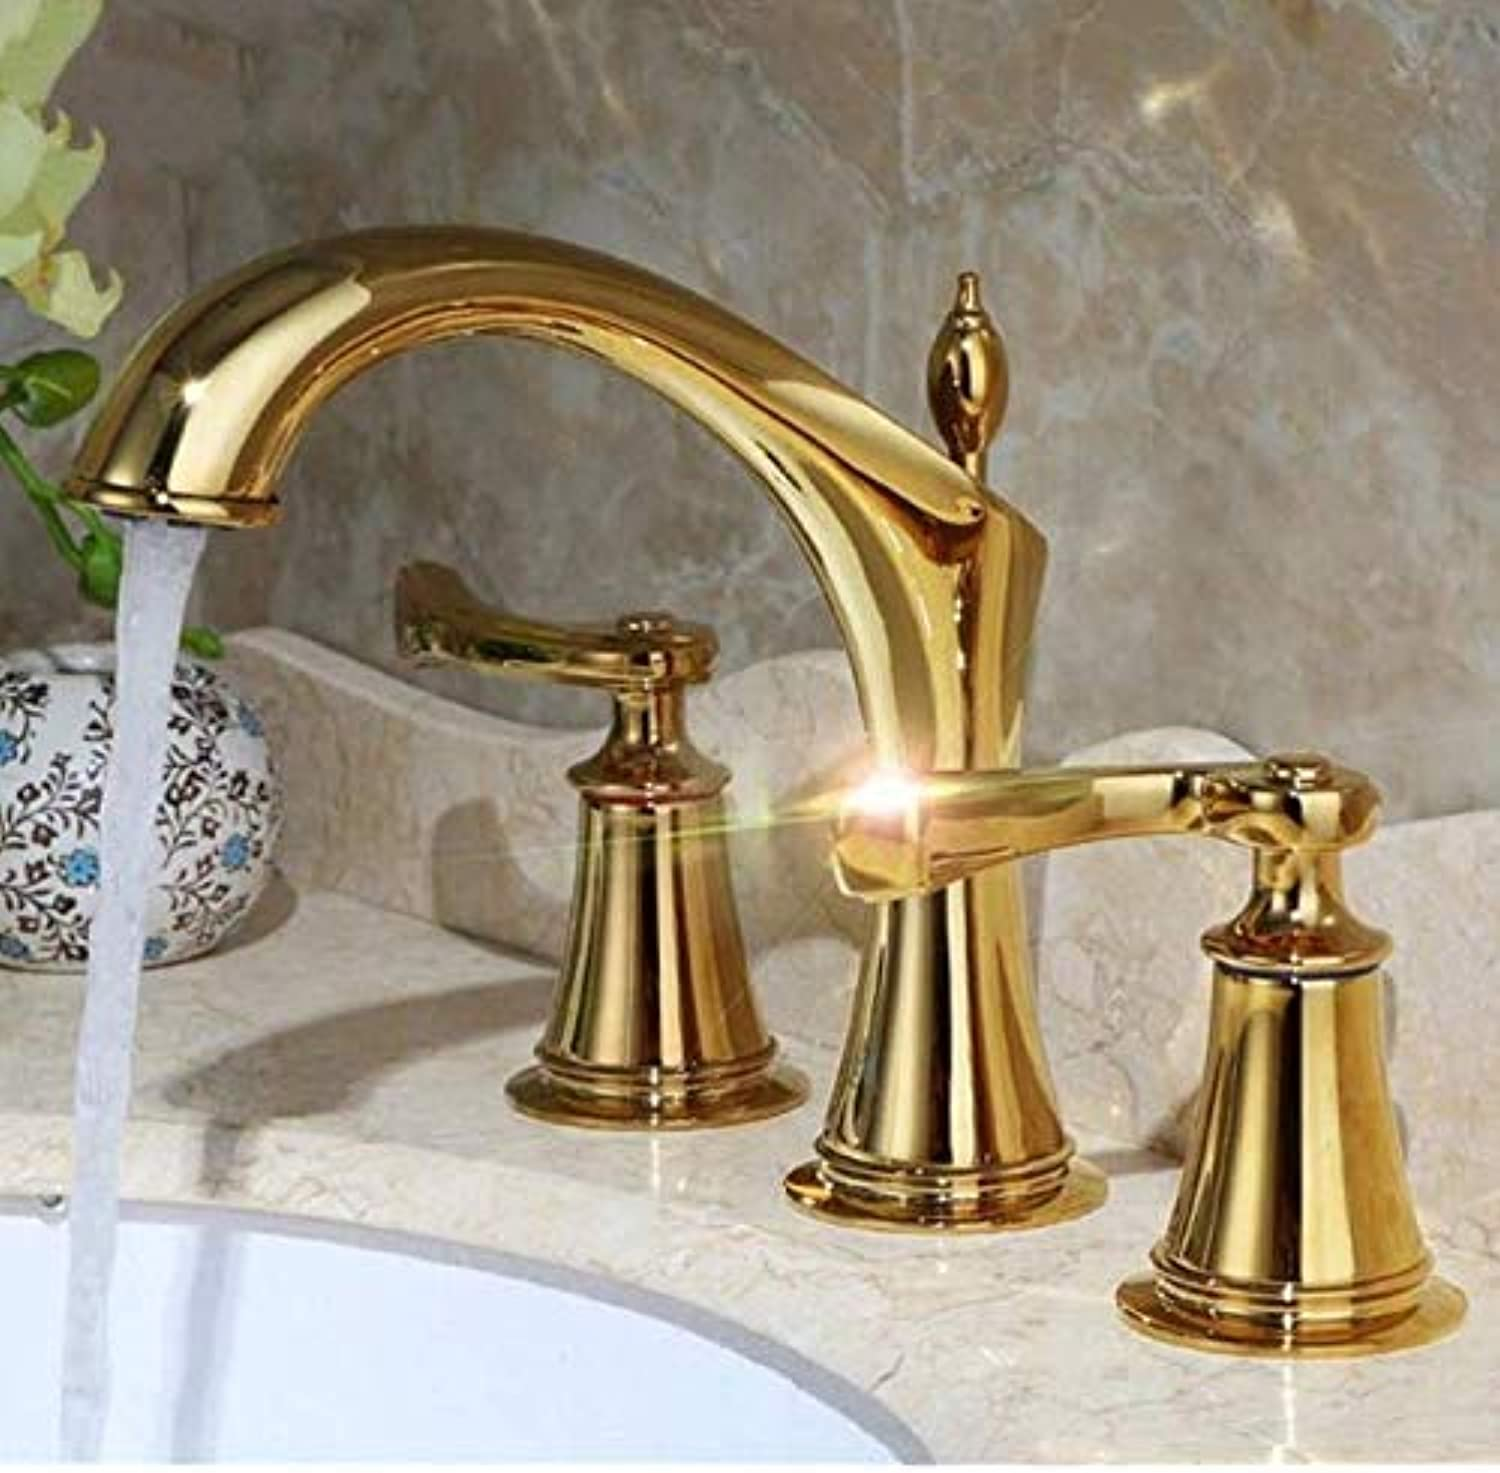 BABATD Faucet Washbasin Mixer Chrome and gold Brass 2-Handle Widespread Bathroom Sink Faucet Lavatory Faucet Mixer Double Handle Tap Deck Mounted